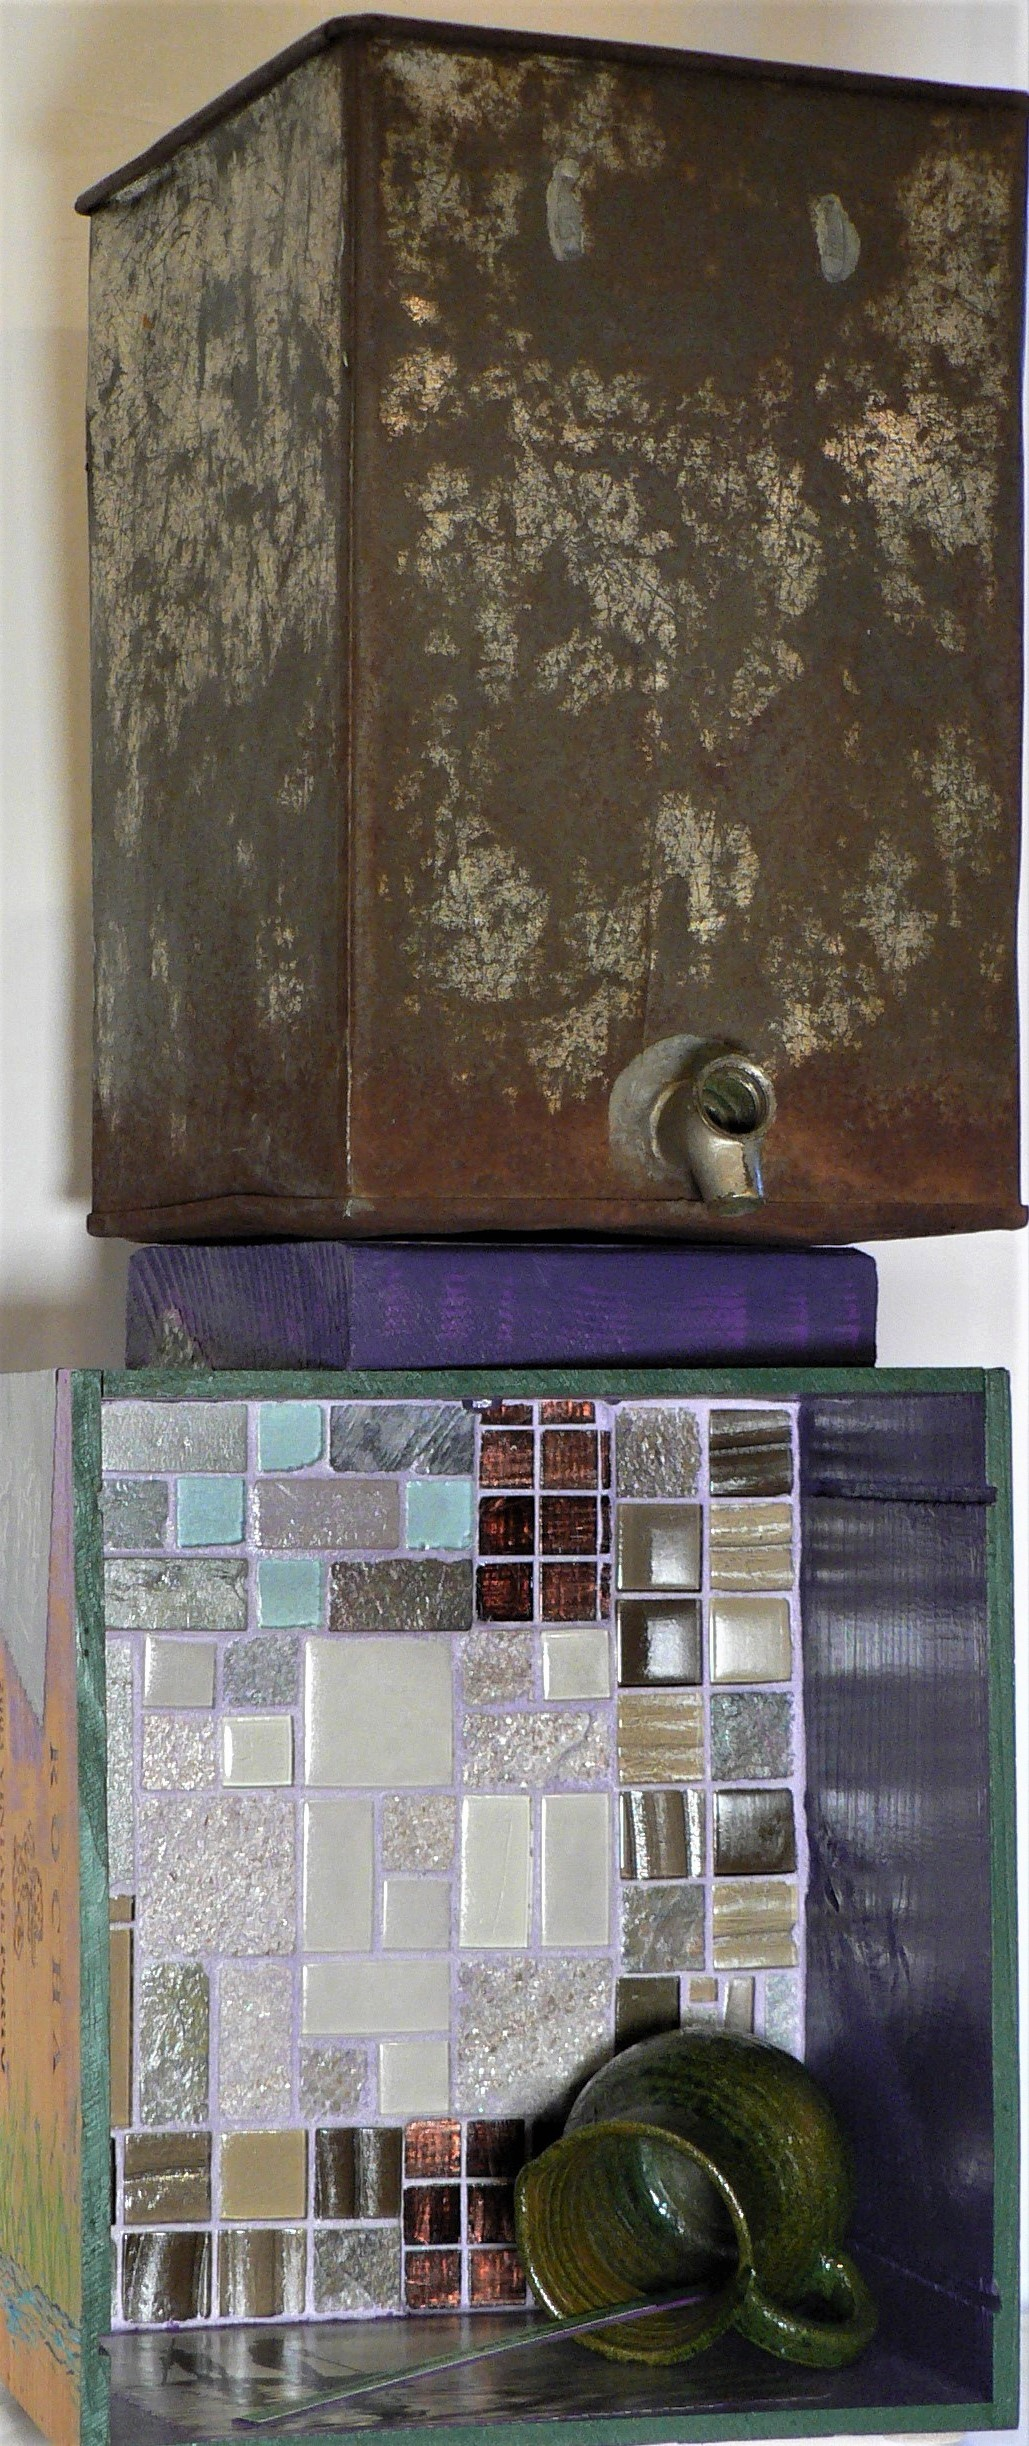 """The Water Tower - """"There is no small pleasure in pure water."""" – OvidMaterials: Wood wine box; vintage water dispenser; ceramic tiles; black and white water images (Genesis, Lisa Salgado & Sebastiao Salgado); ceramic pitcher (Oaxaca); acrylic paint. Dimensions: 27""""H x 11""""W x 7""""D. Created: April 2019.Status: For Sale ($250)"""